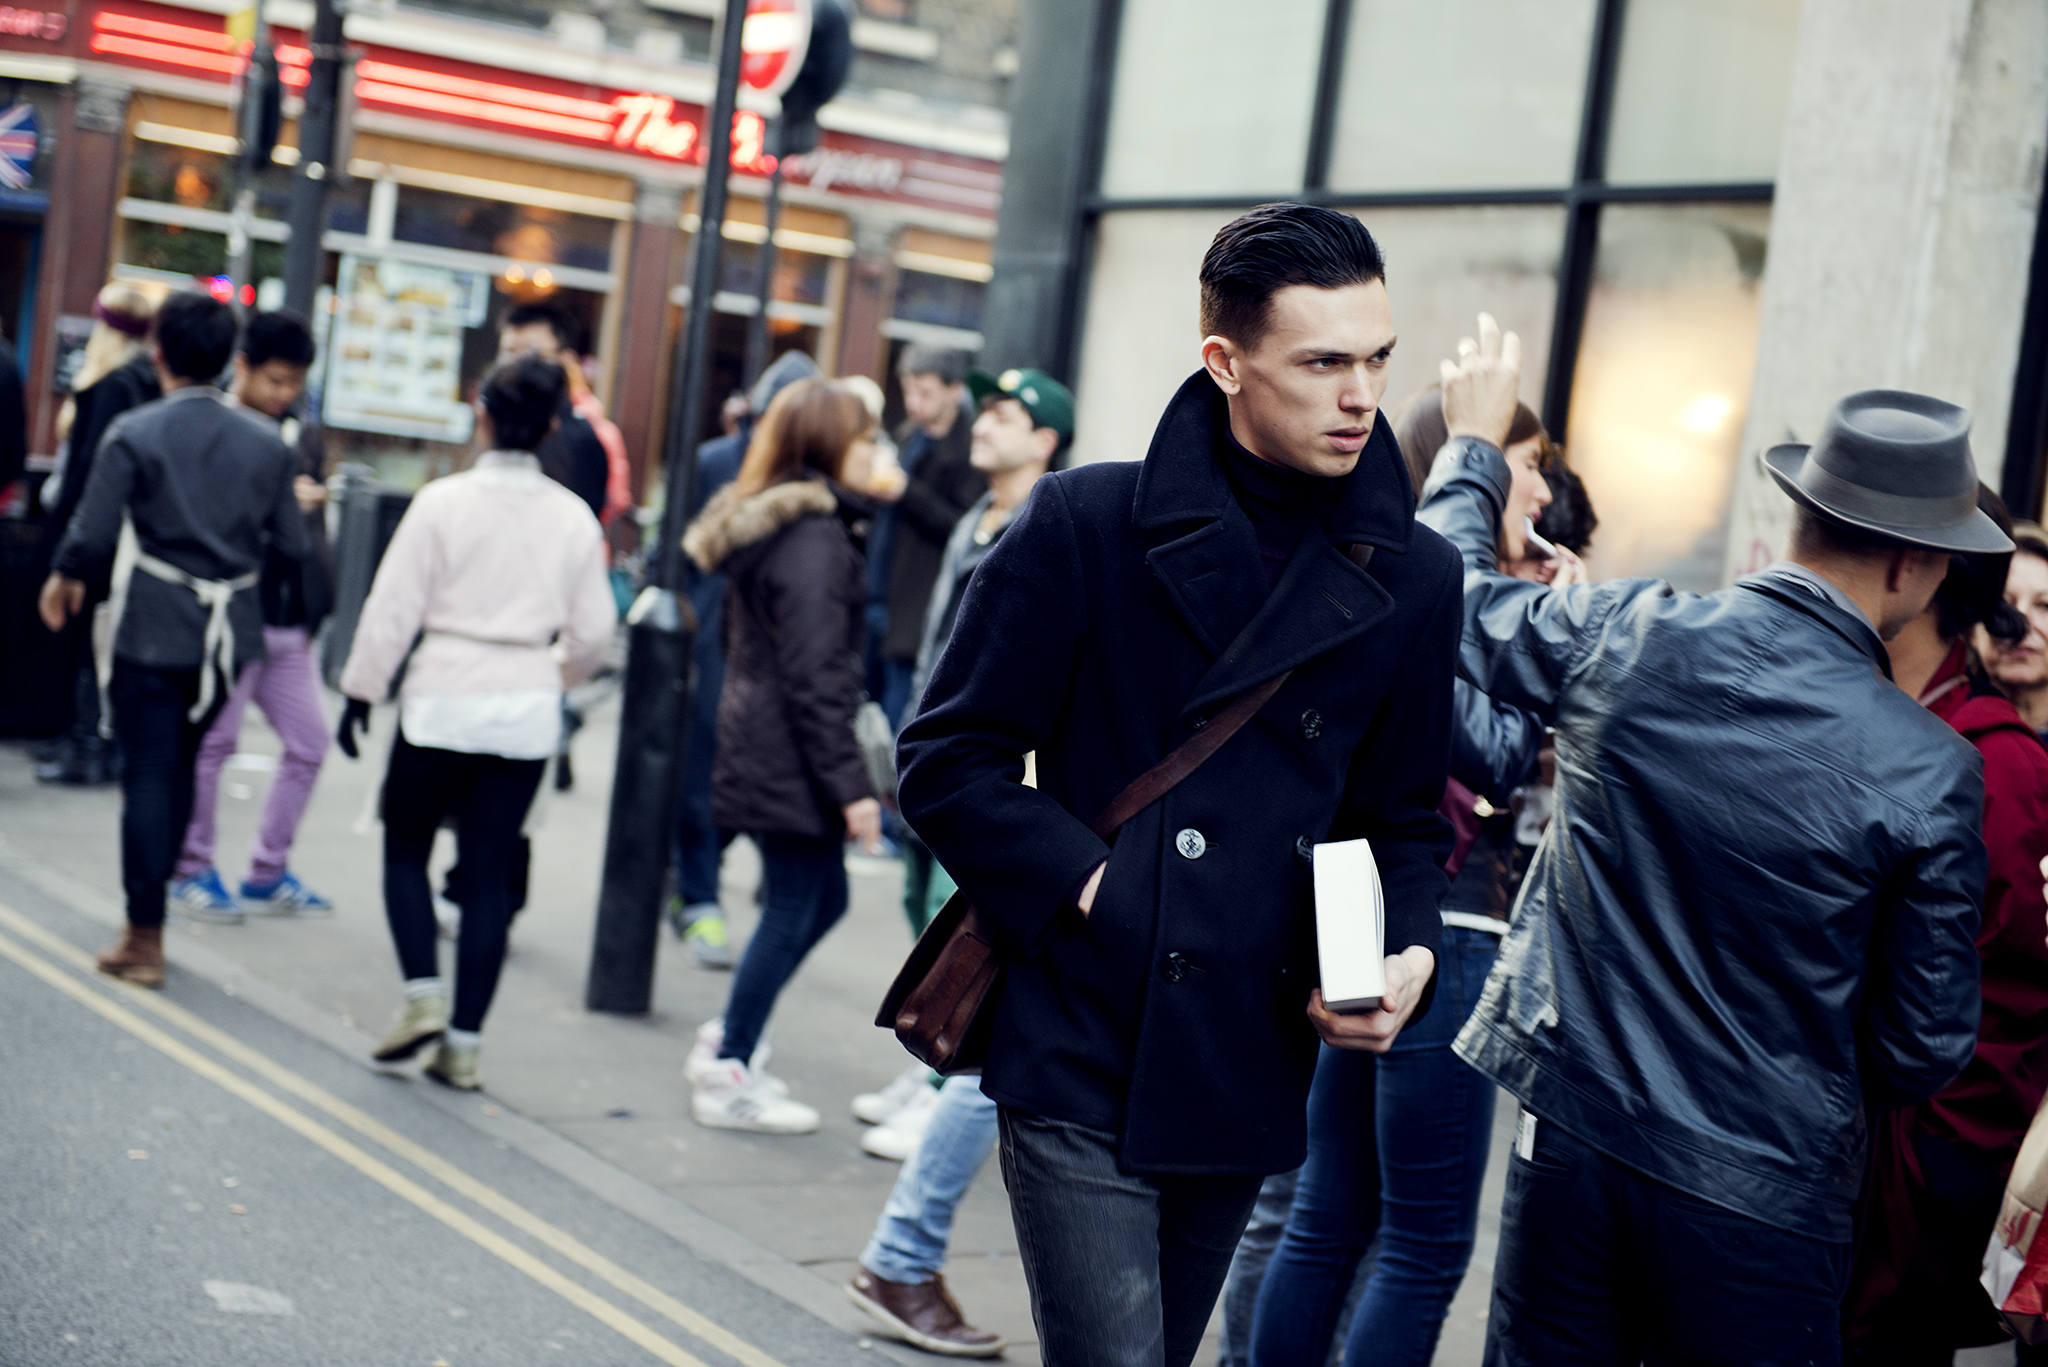 Young man in black coat with a book in his hand walking down Brick Lane